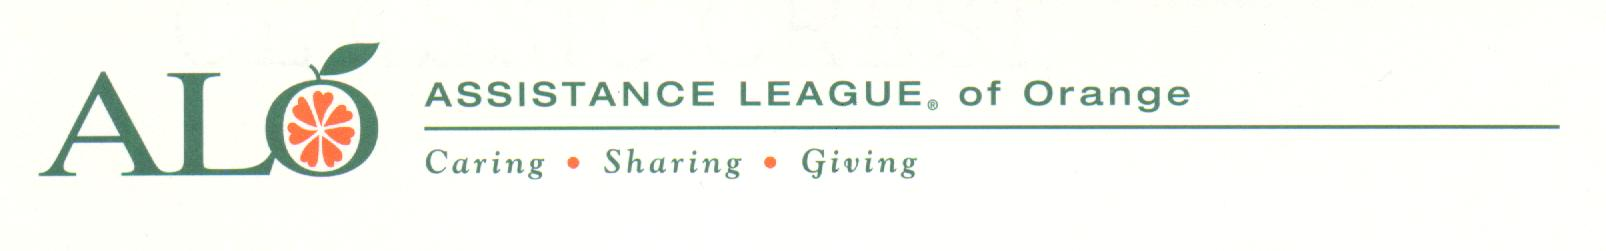 Assistance League Of Orange California, Inc.